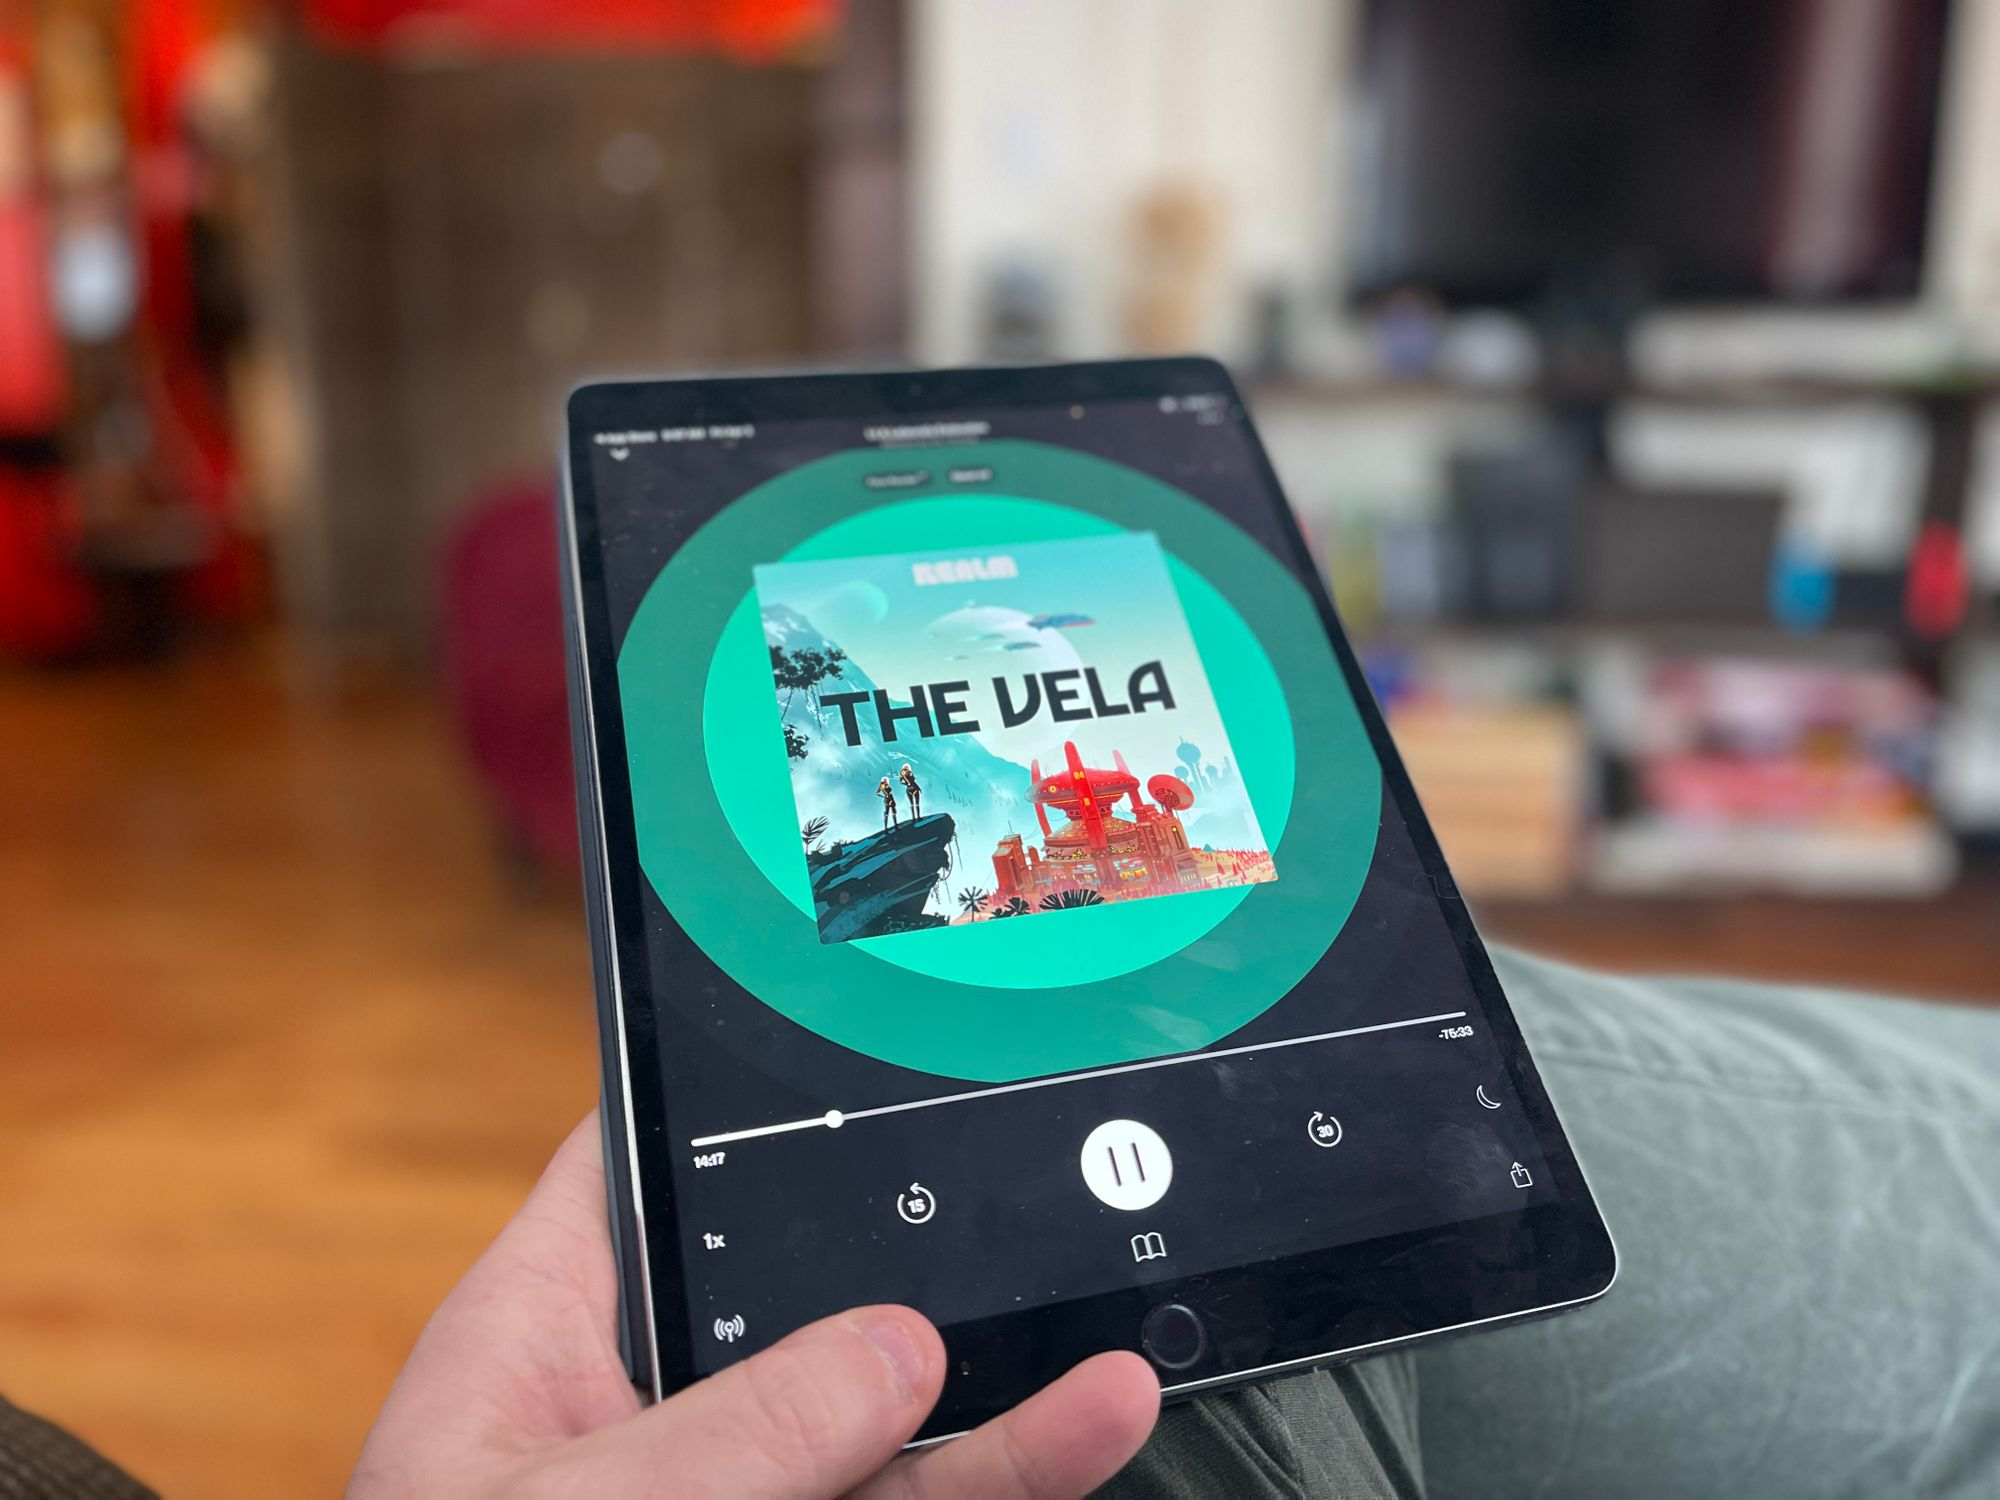 An iPad displays The Vela in Realm's app